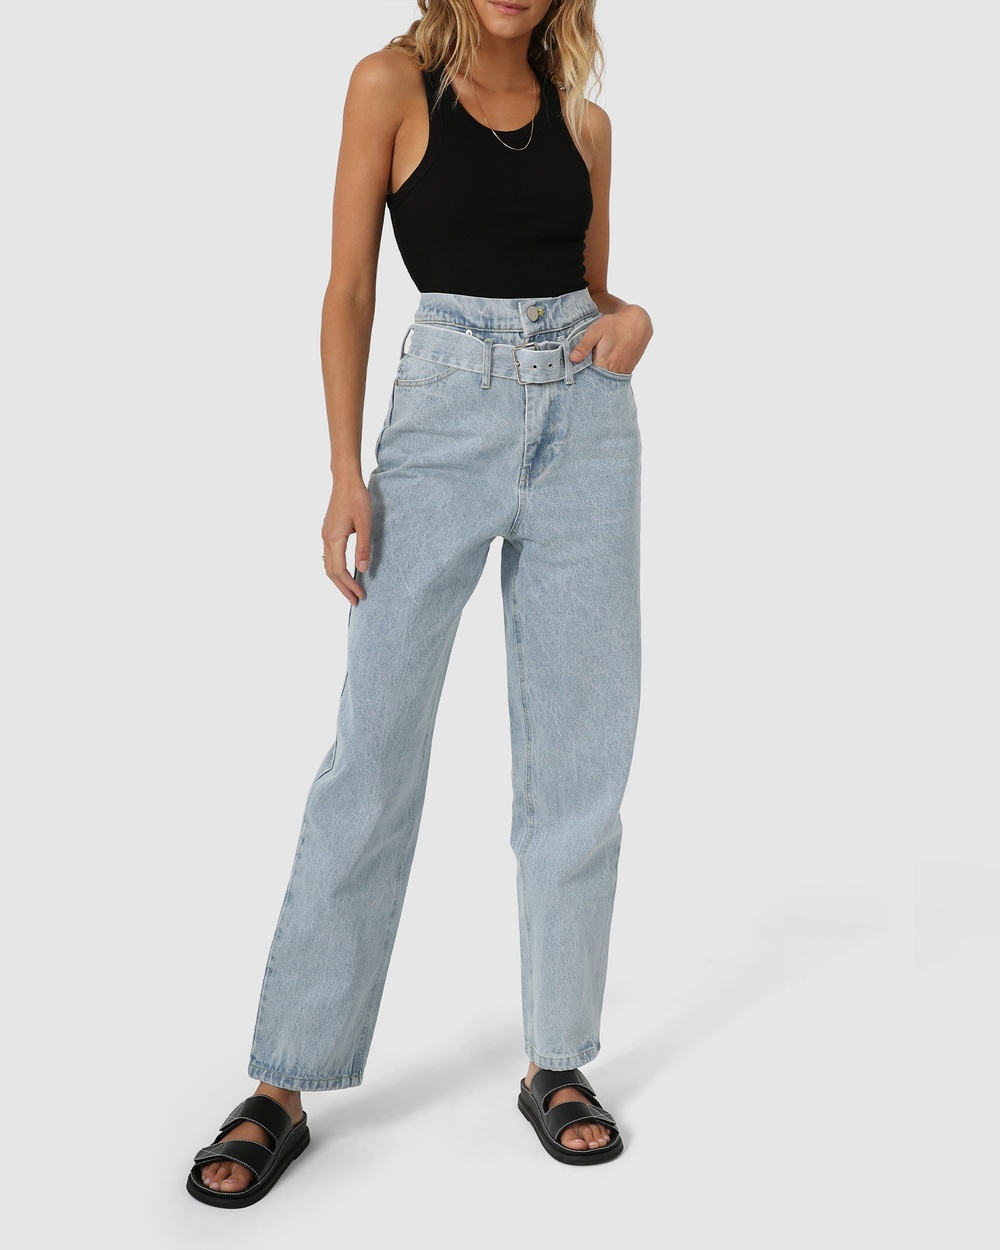 Madison The Label Olympus Jeans High-Waisted Blue Australia